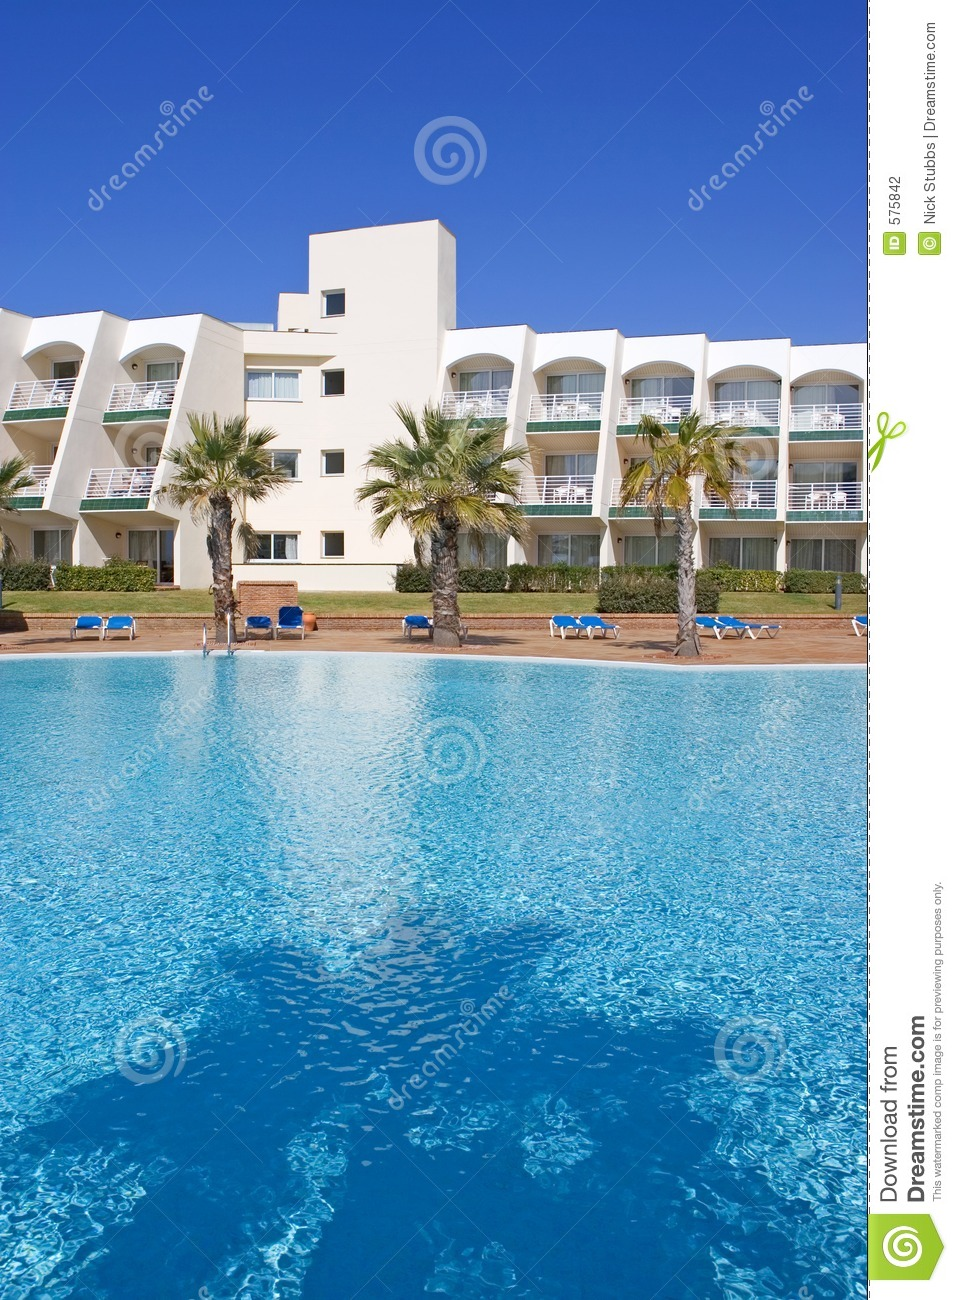 Swimming Pool In Spanish Hotel With Palm Trees Stock Photography Image 575842